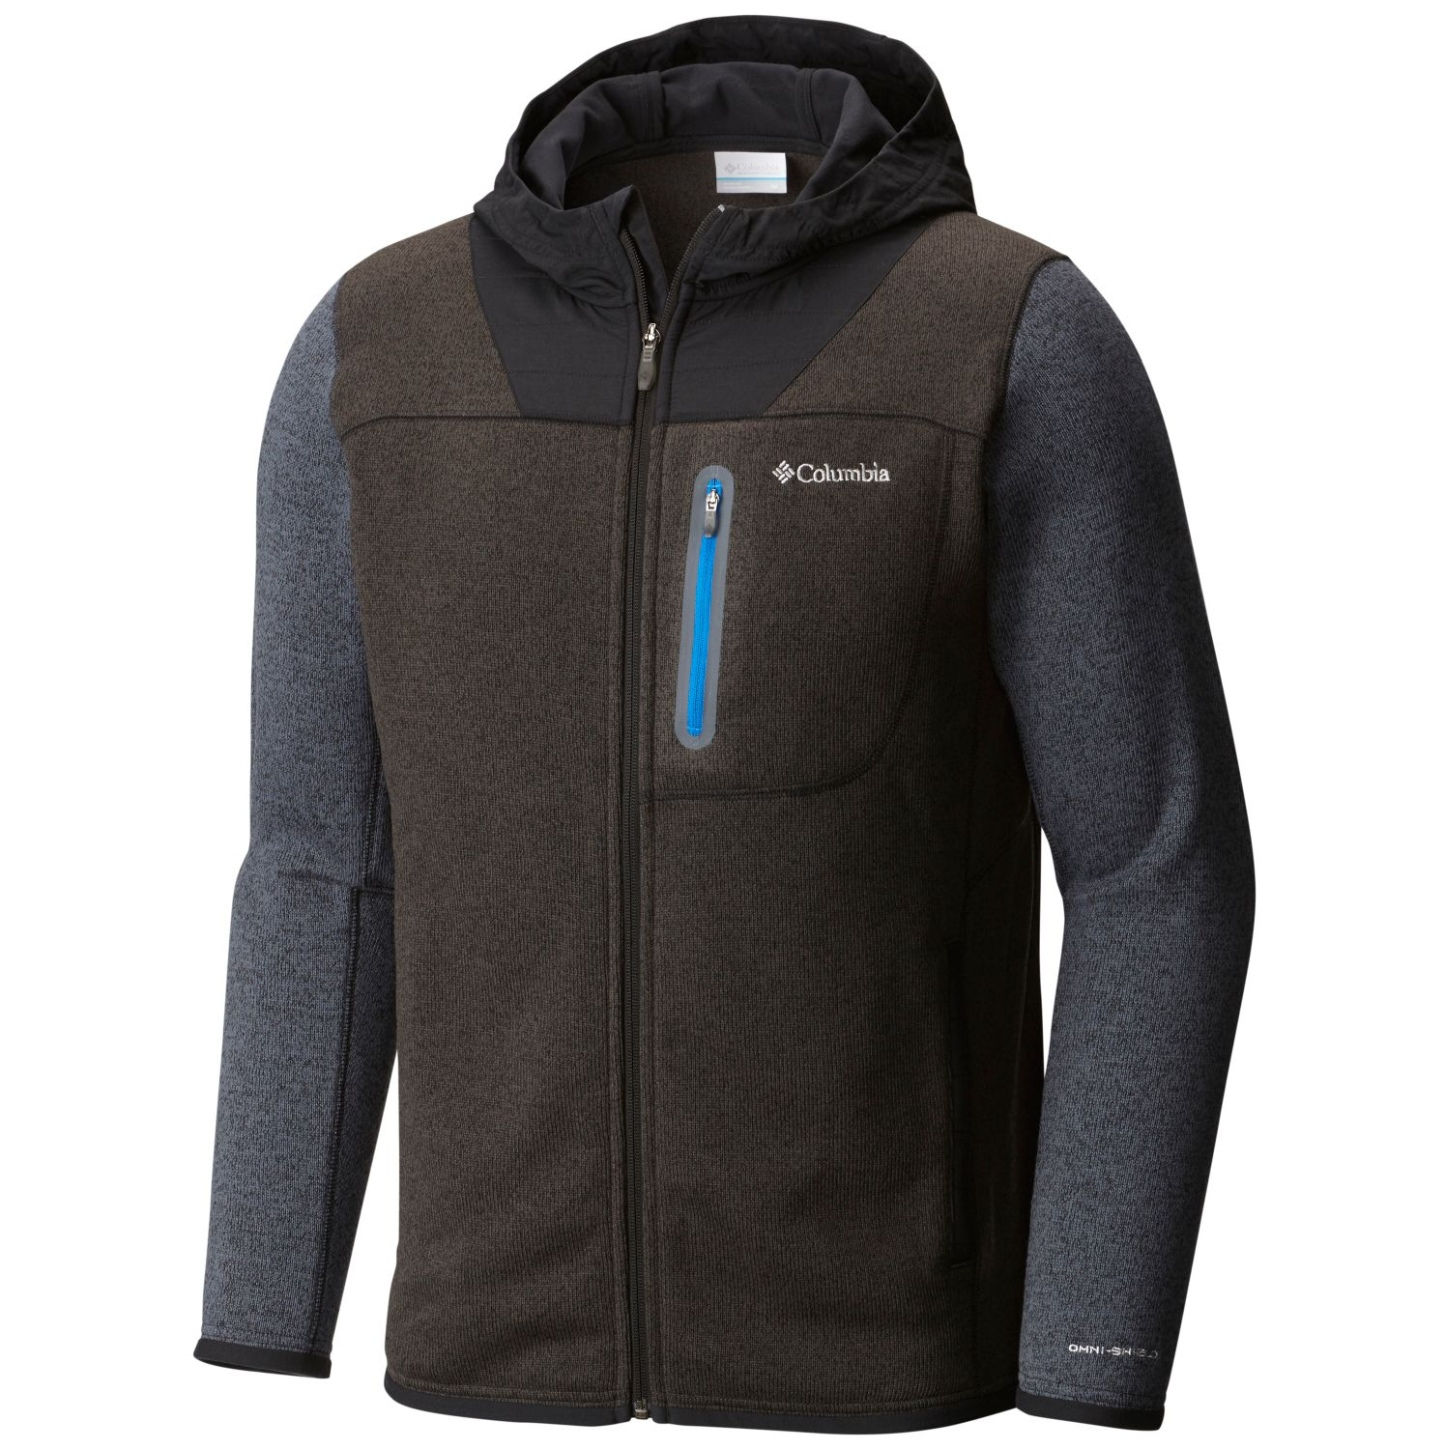 Columbia Men's Altitude Aspect Full Zip Hoody Black, Graphite-30